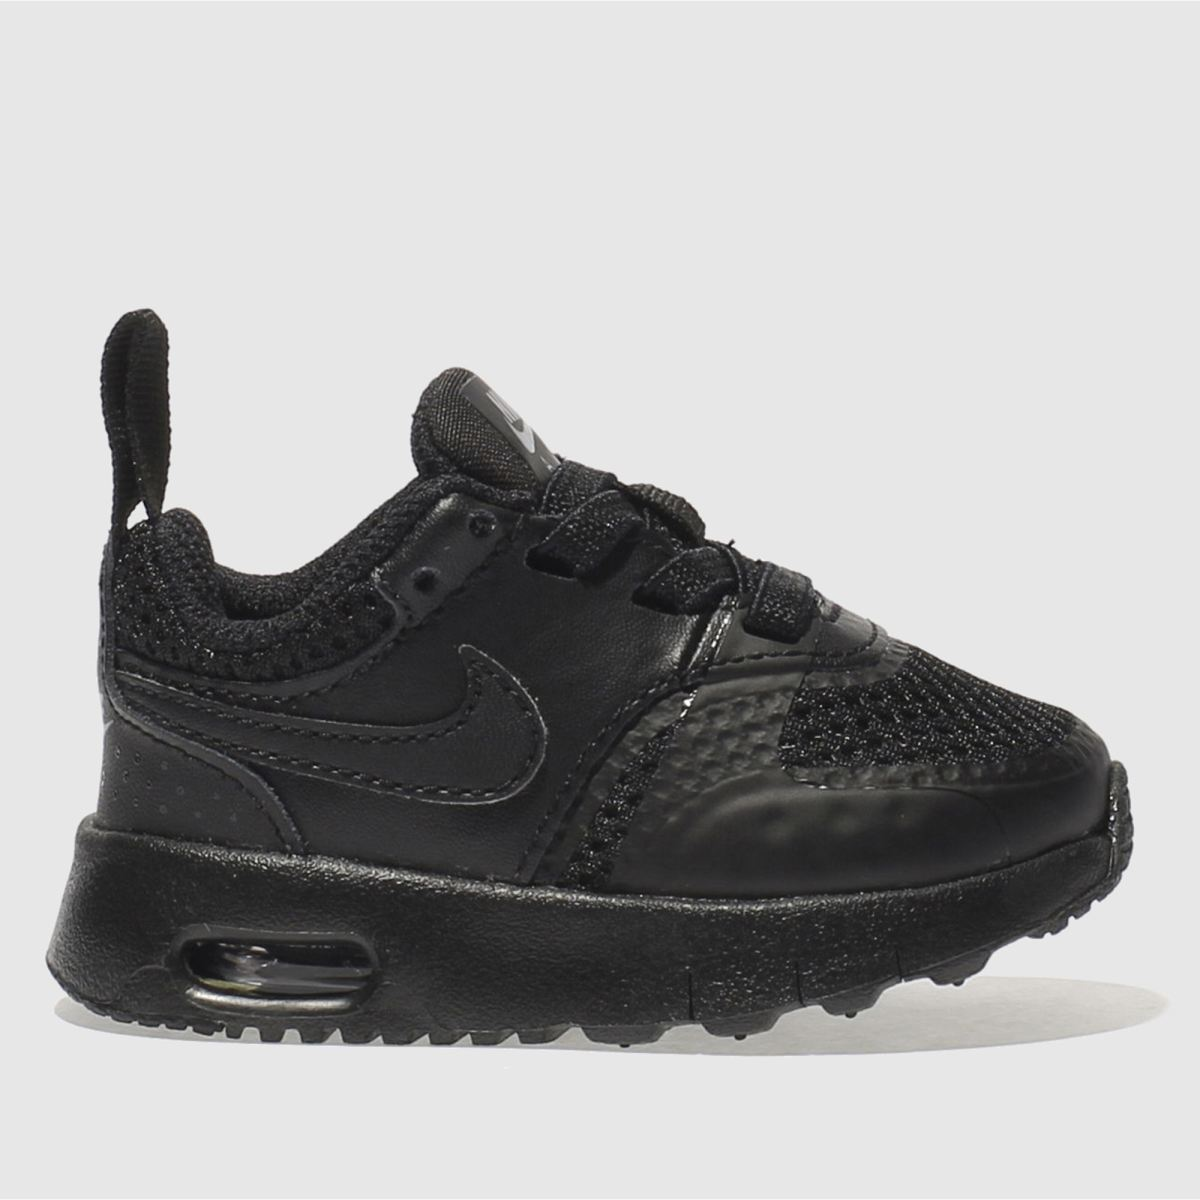 nike black air max vision Toddler Trainers